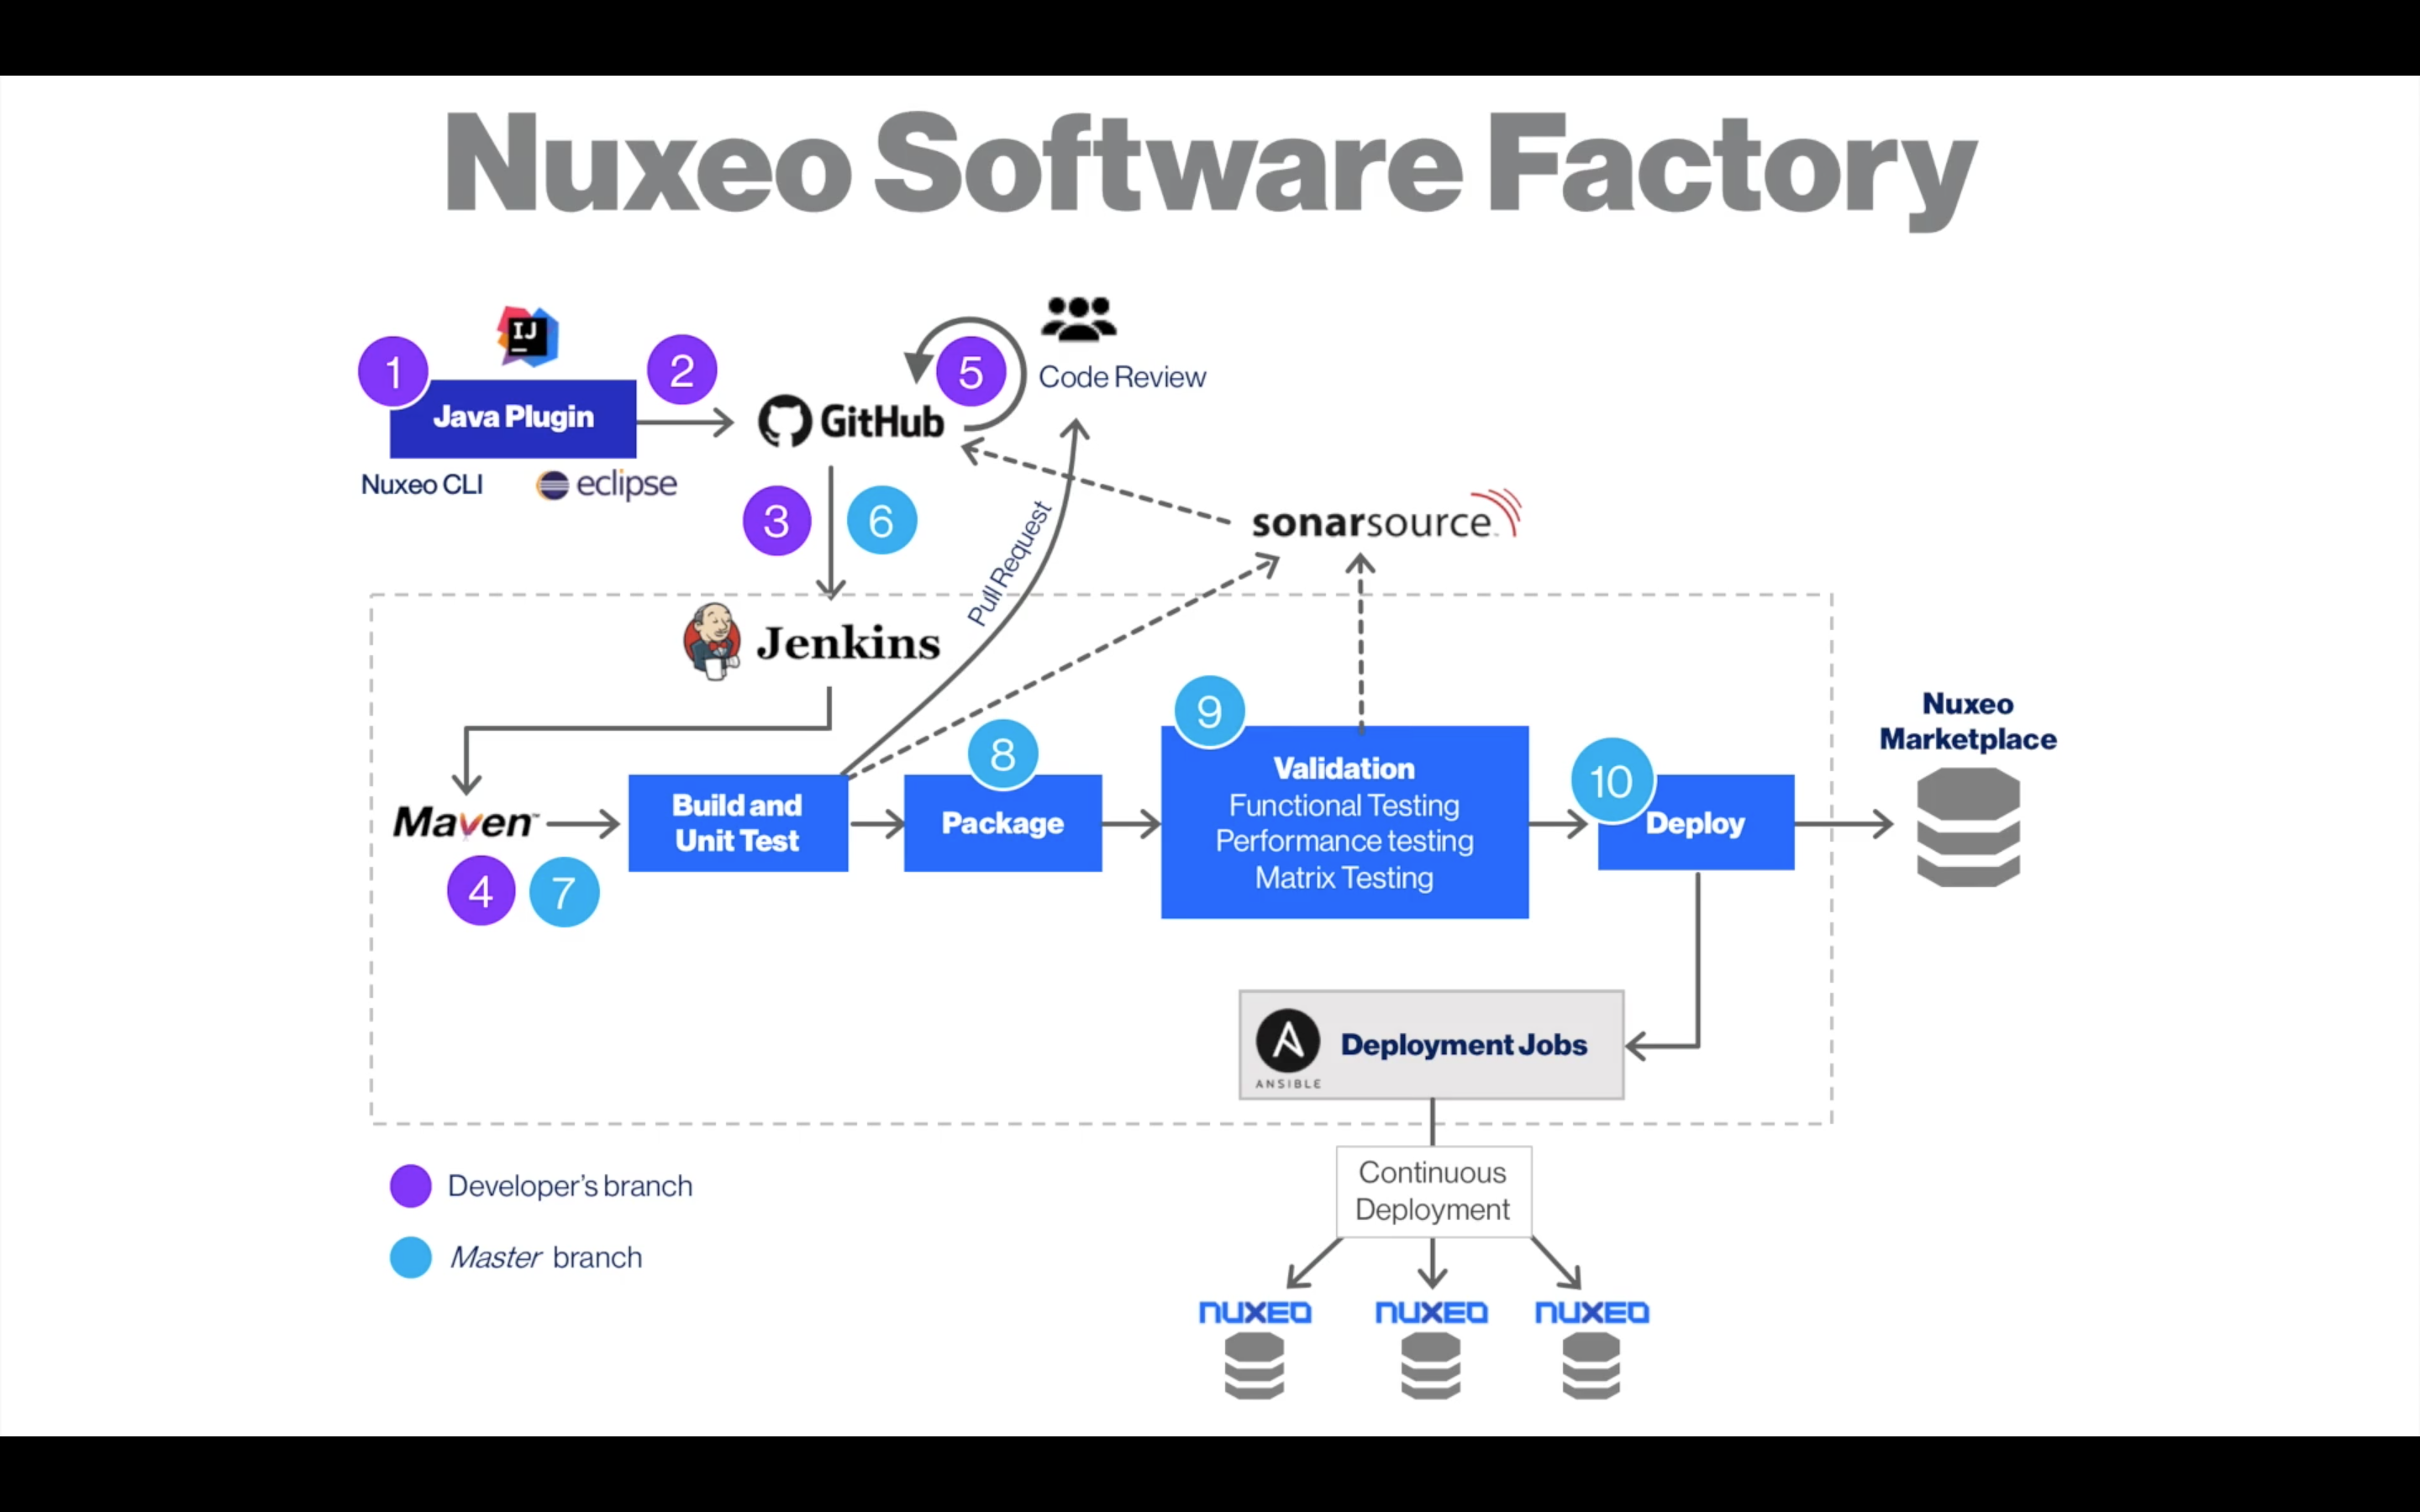 Quality Assurance and Continuous Integration | Nuxeo